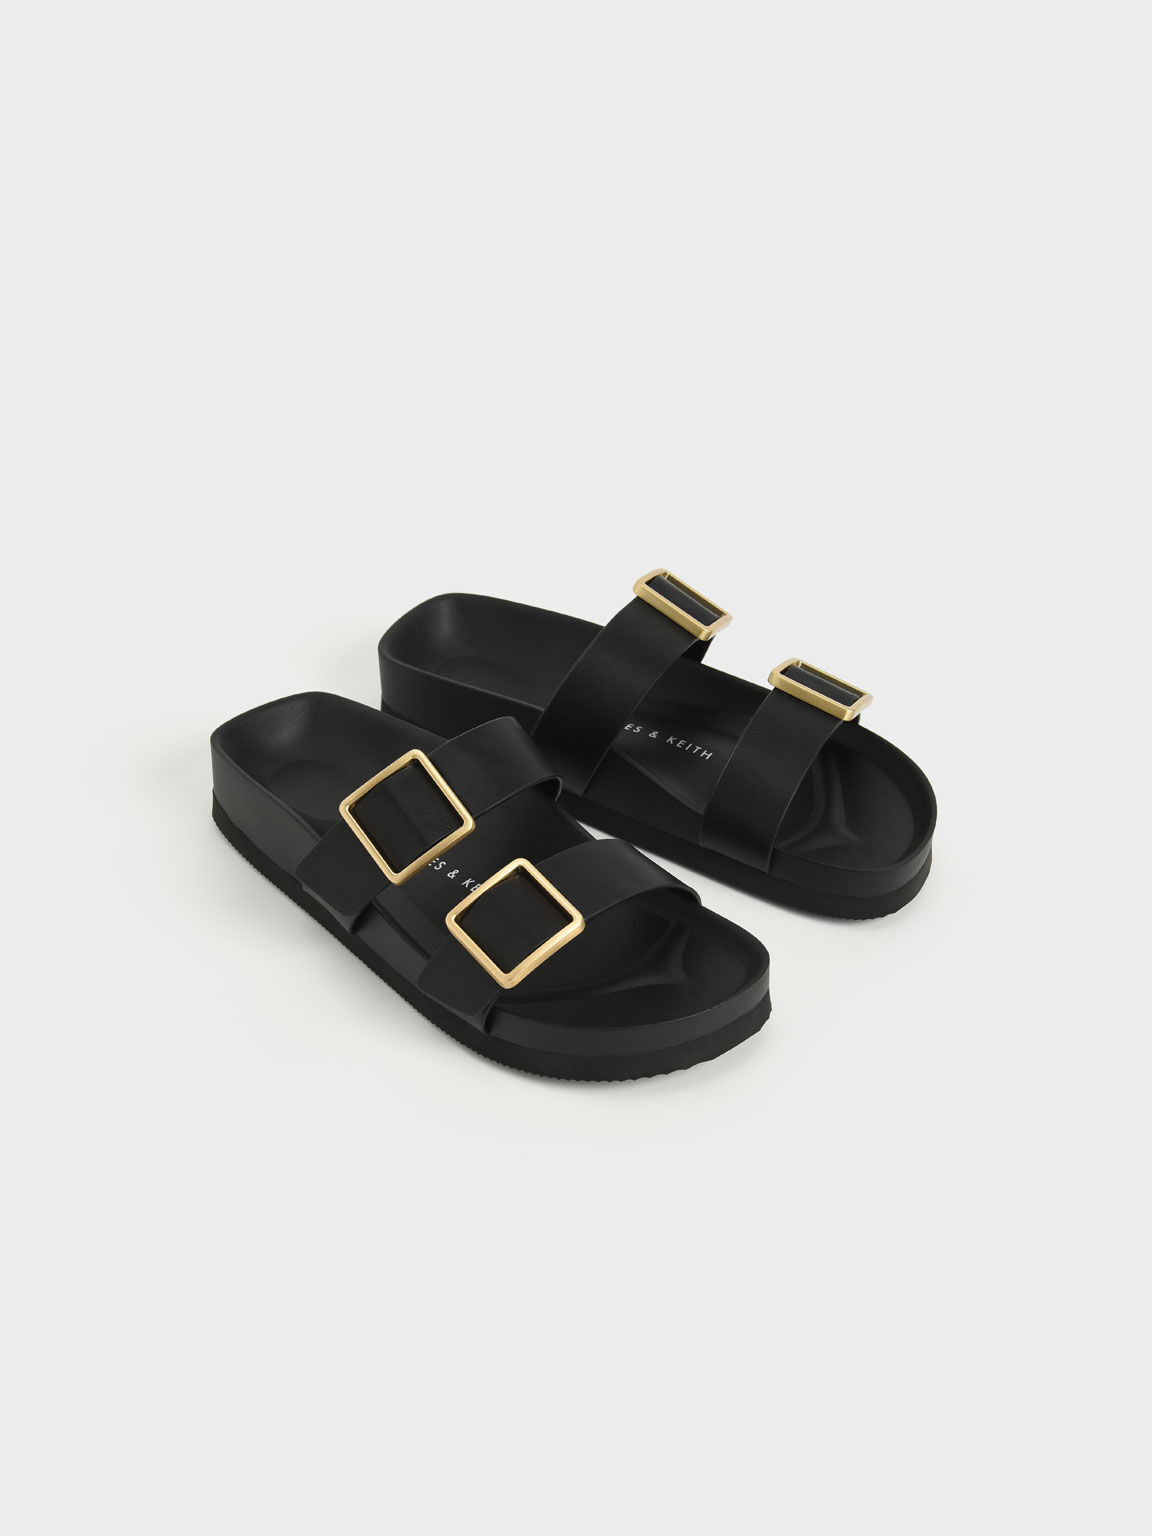 Buckle Strap Slide Sandals, Black, hi-res